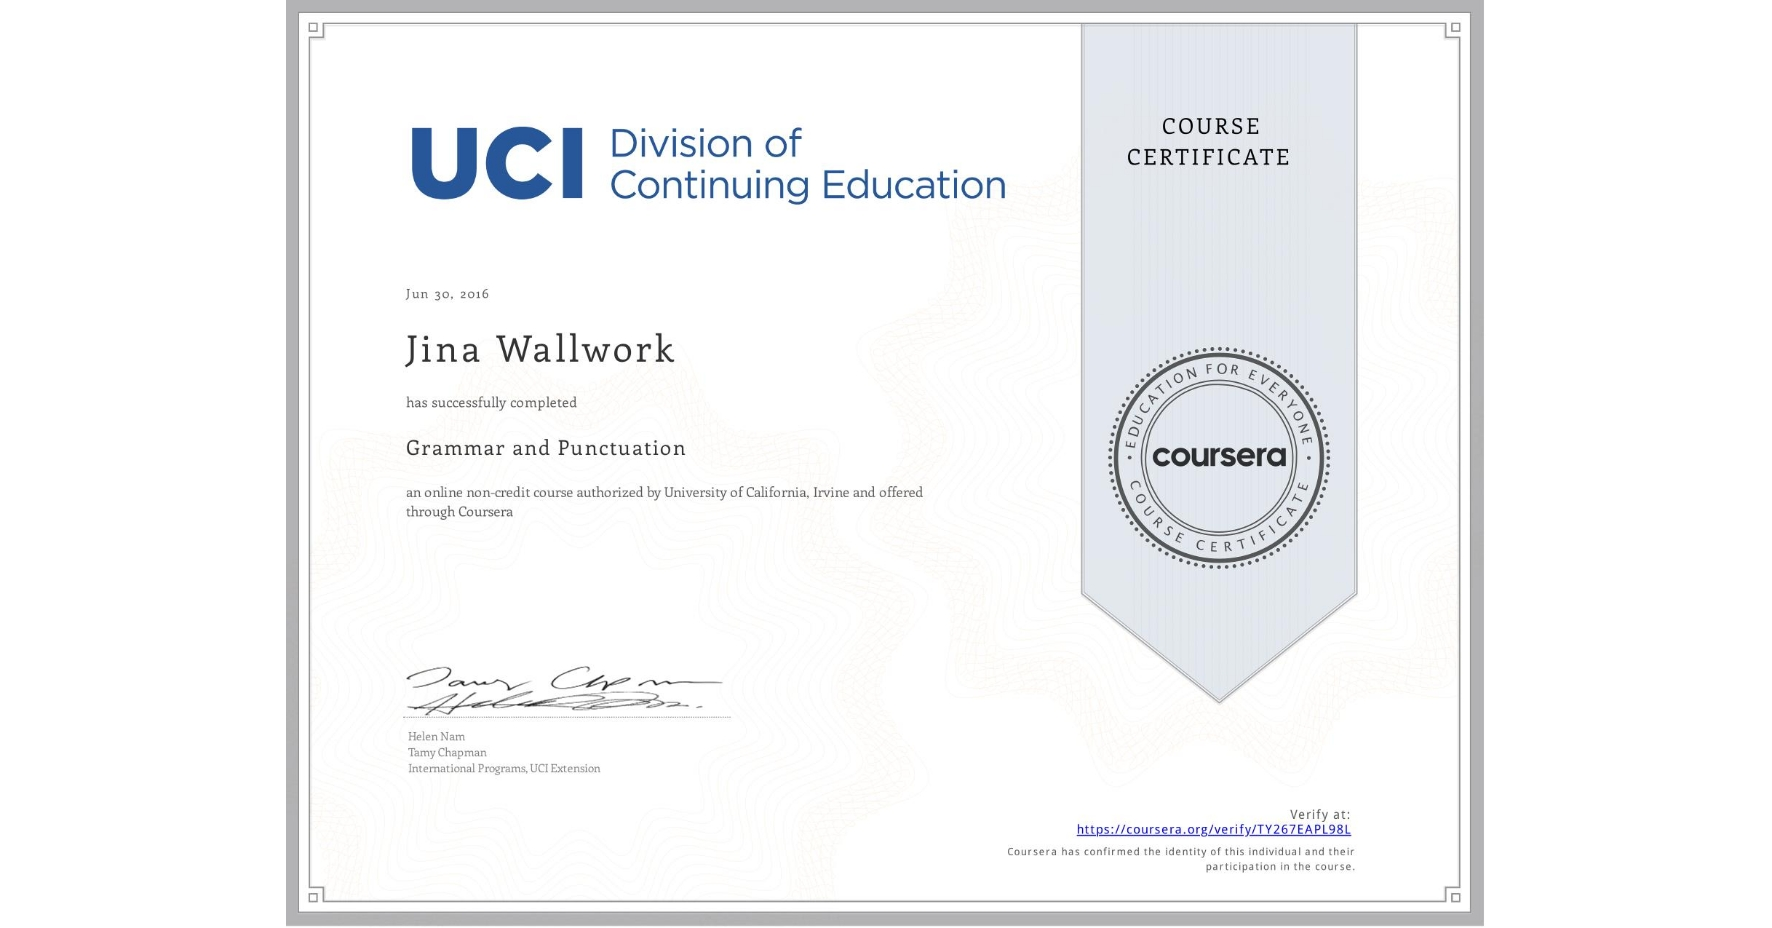 View certificate for Jina Wallwork, Grammar and Punctuation, an online non-credit course authorized by University of California, Irvine and offered through Coursera